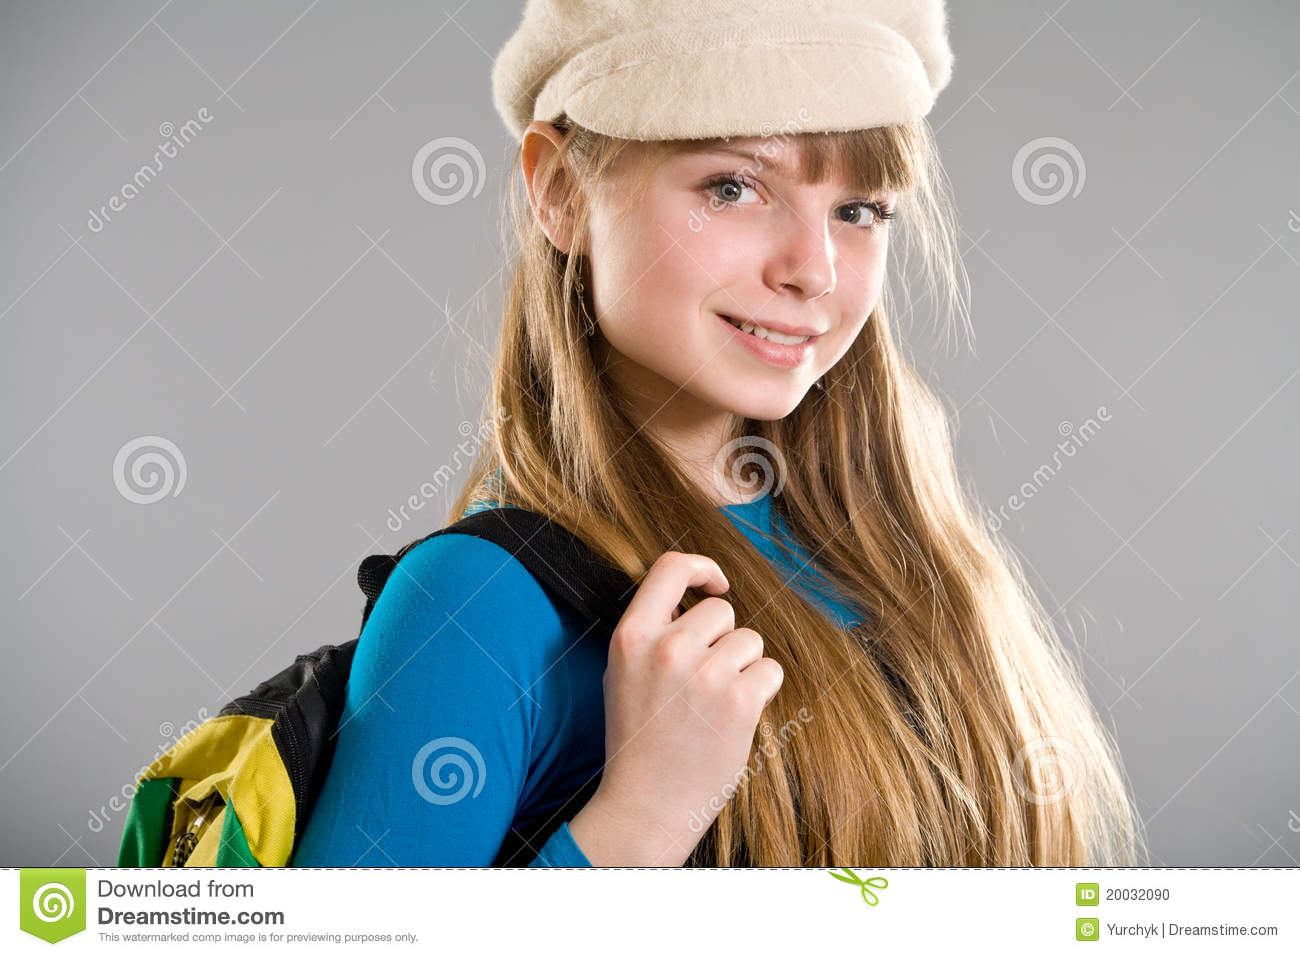 Highschool girl wearing beret